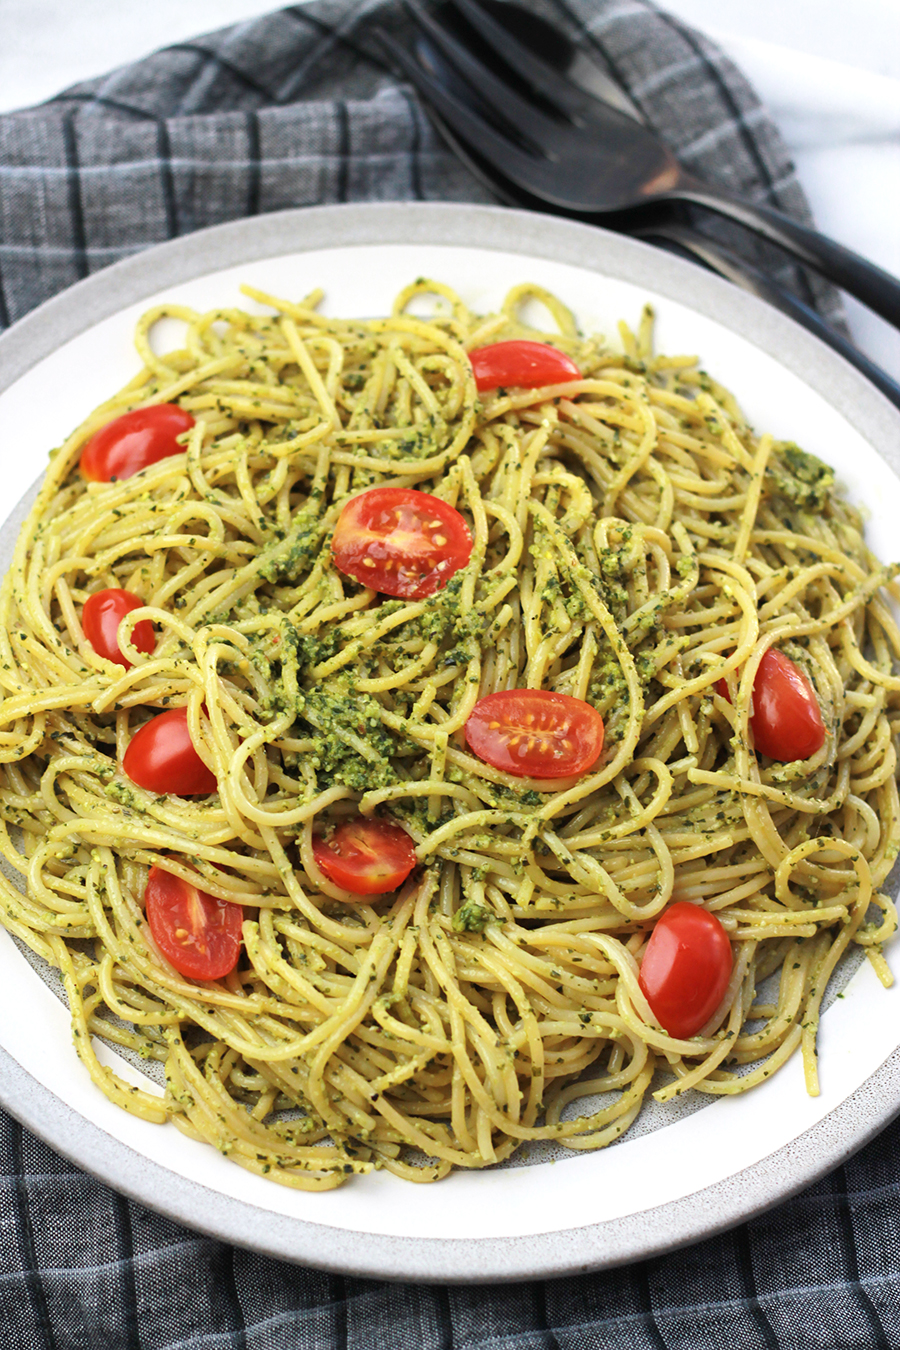 Plate of pasta tossed with Vegan Pesto with tomatoes on top.